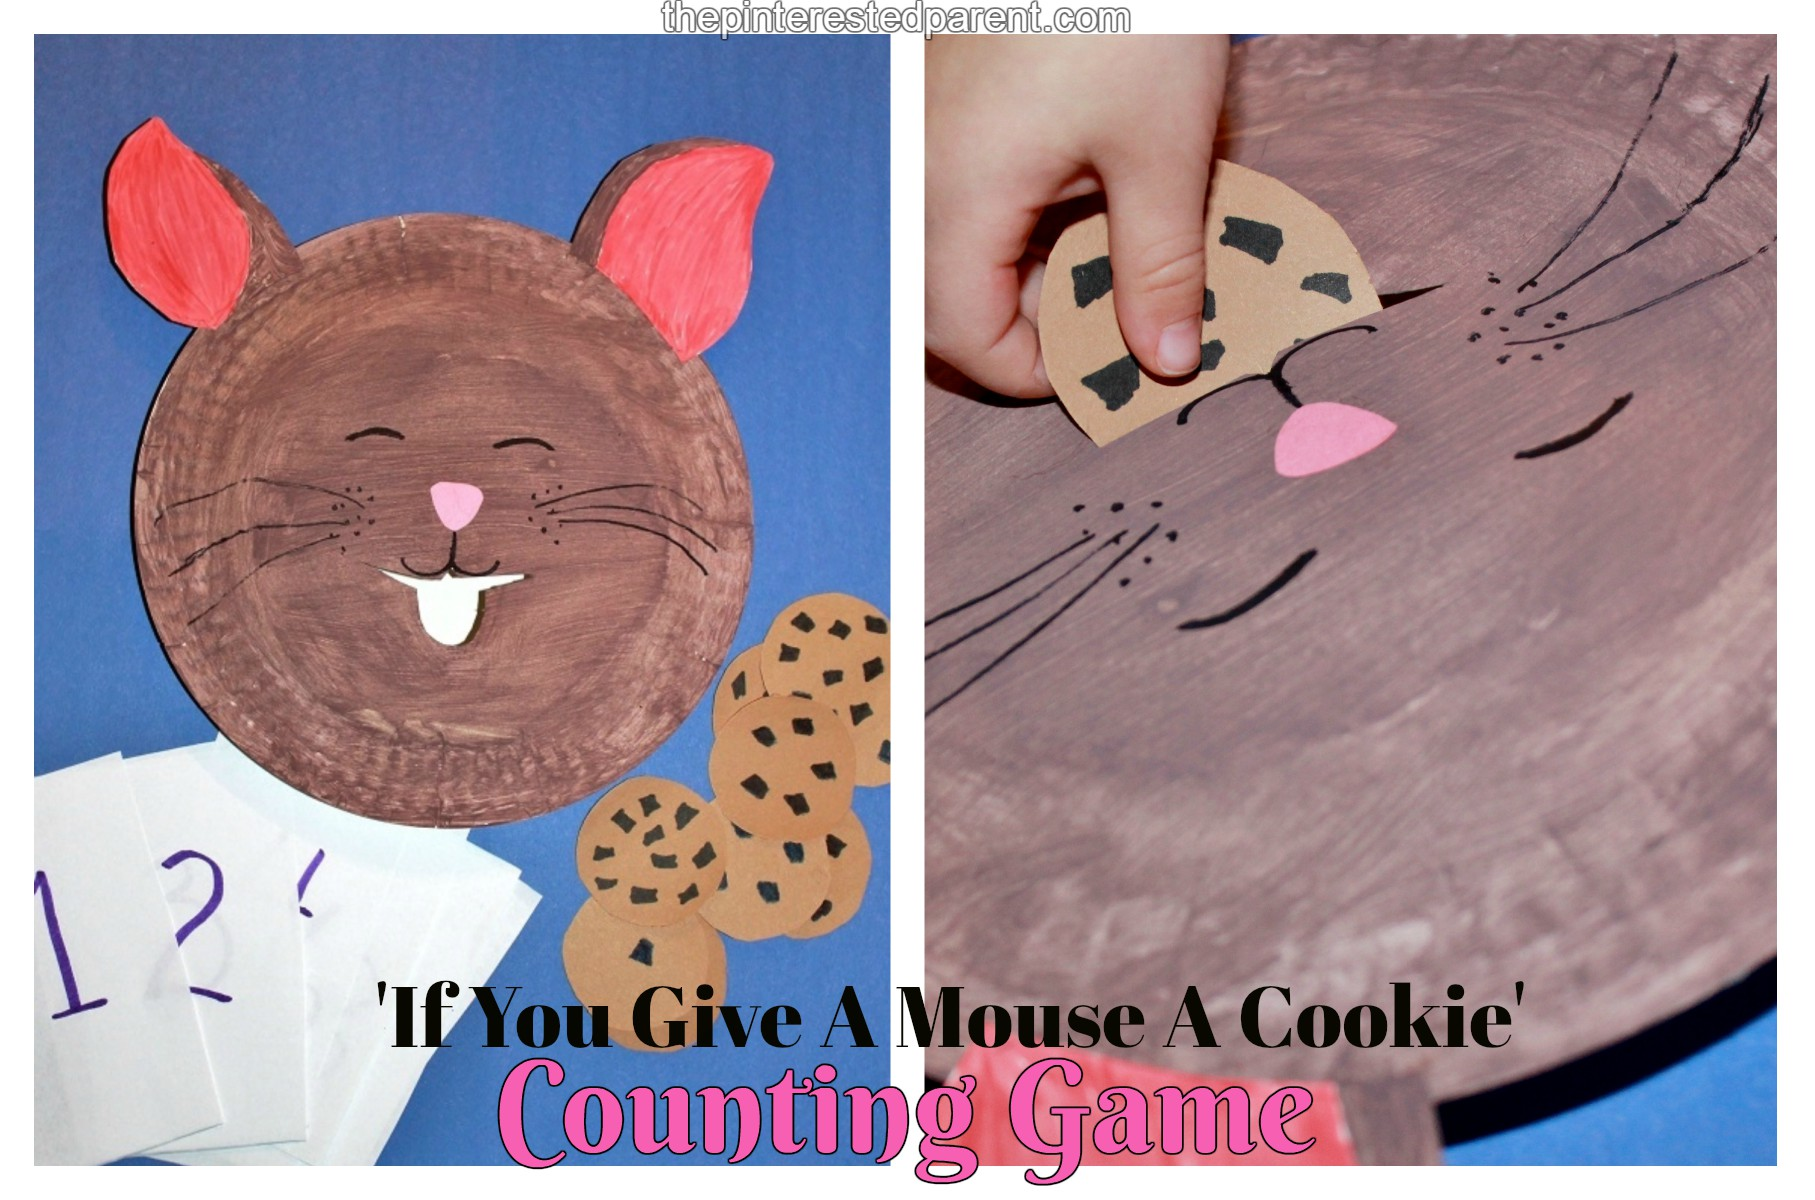 u0026 39 if you give a mouse a cookie u0026 39  counting game  u2013 the